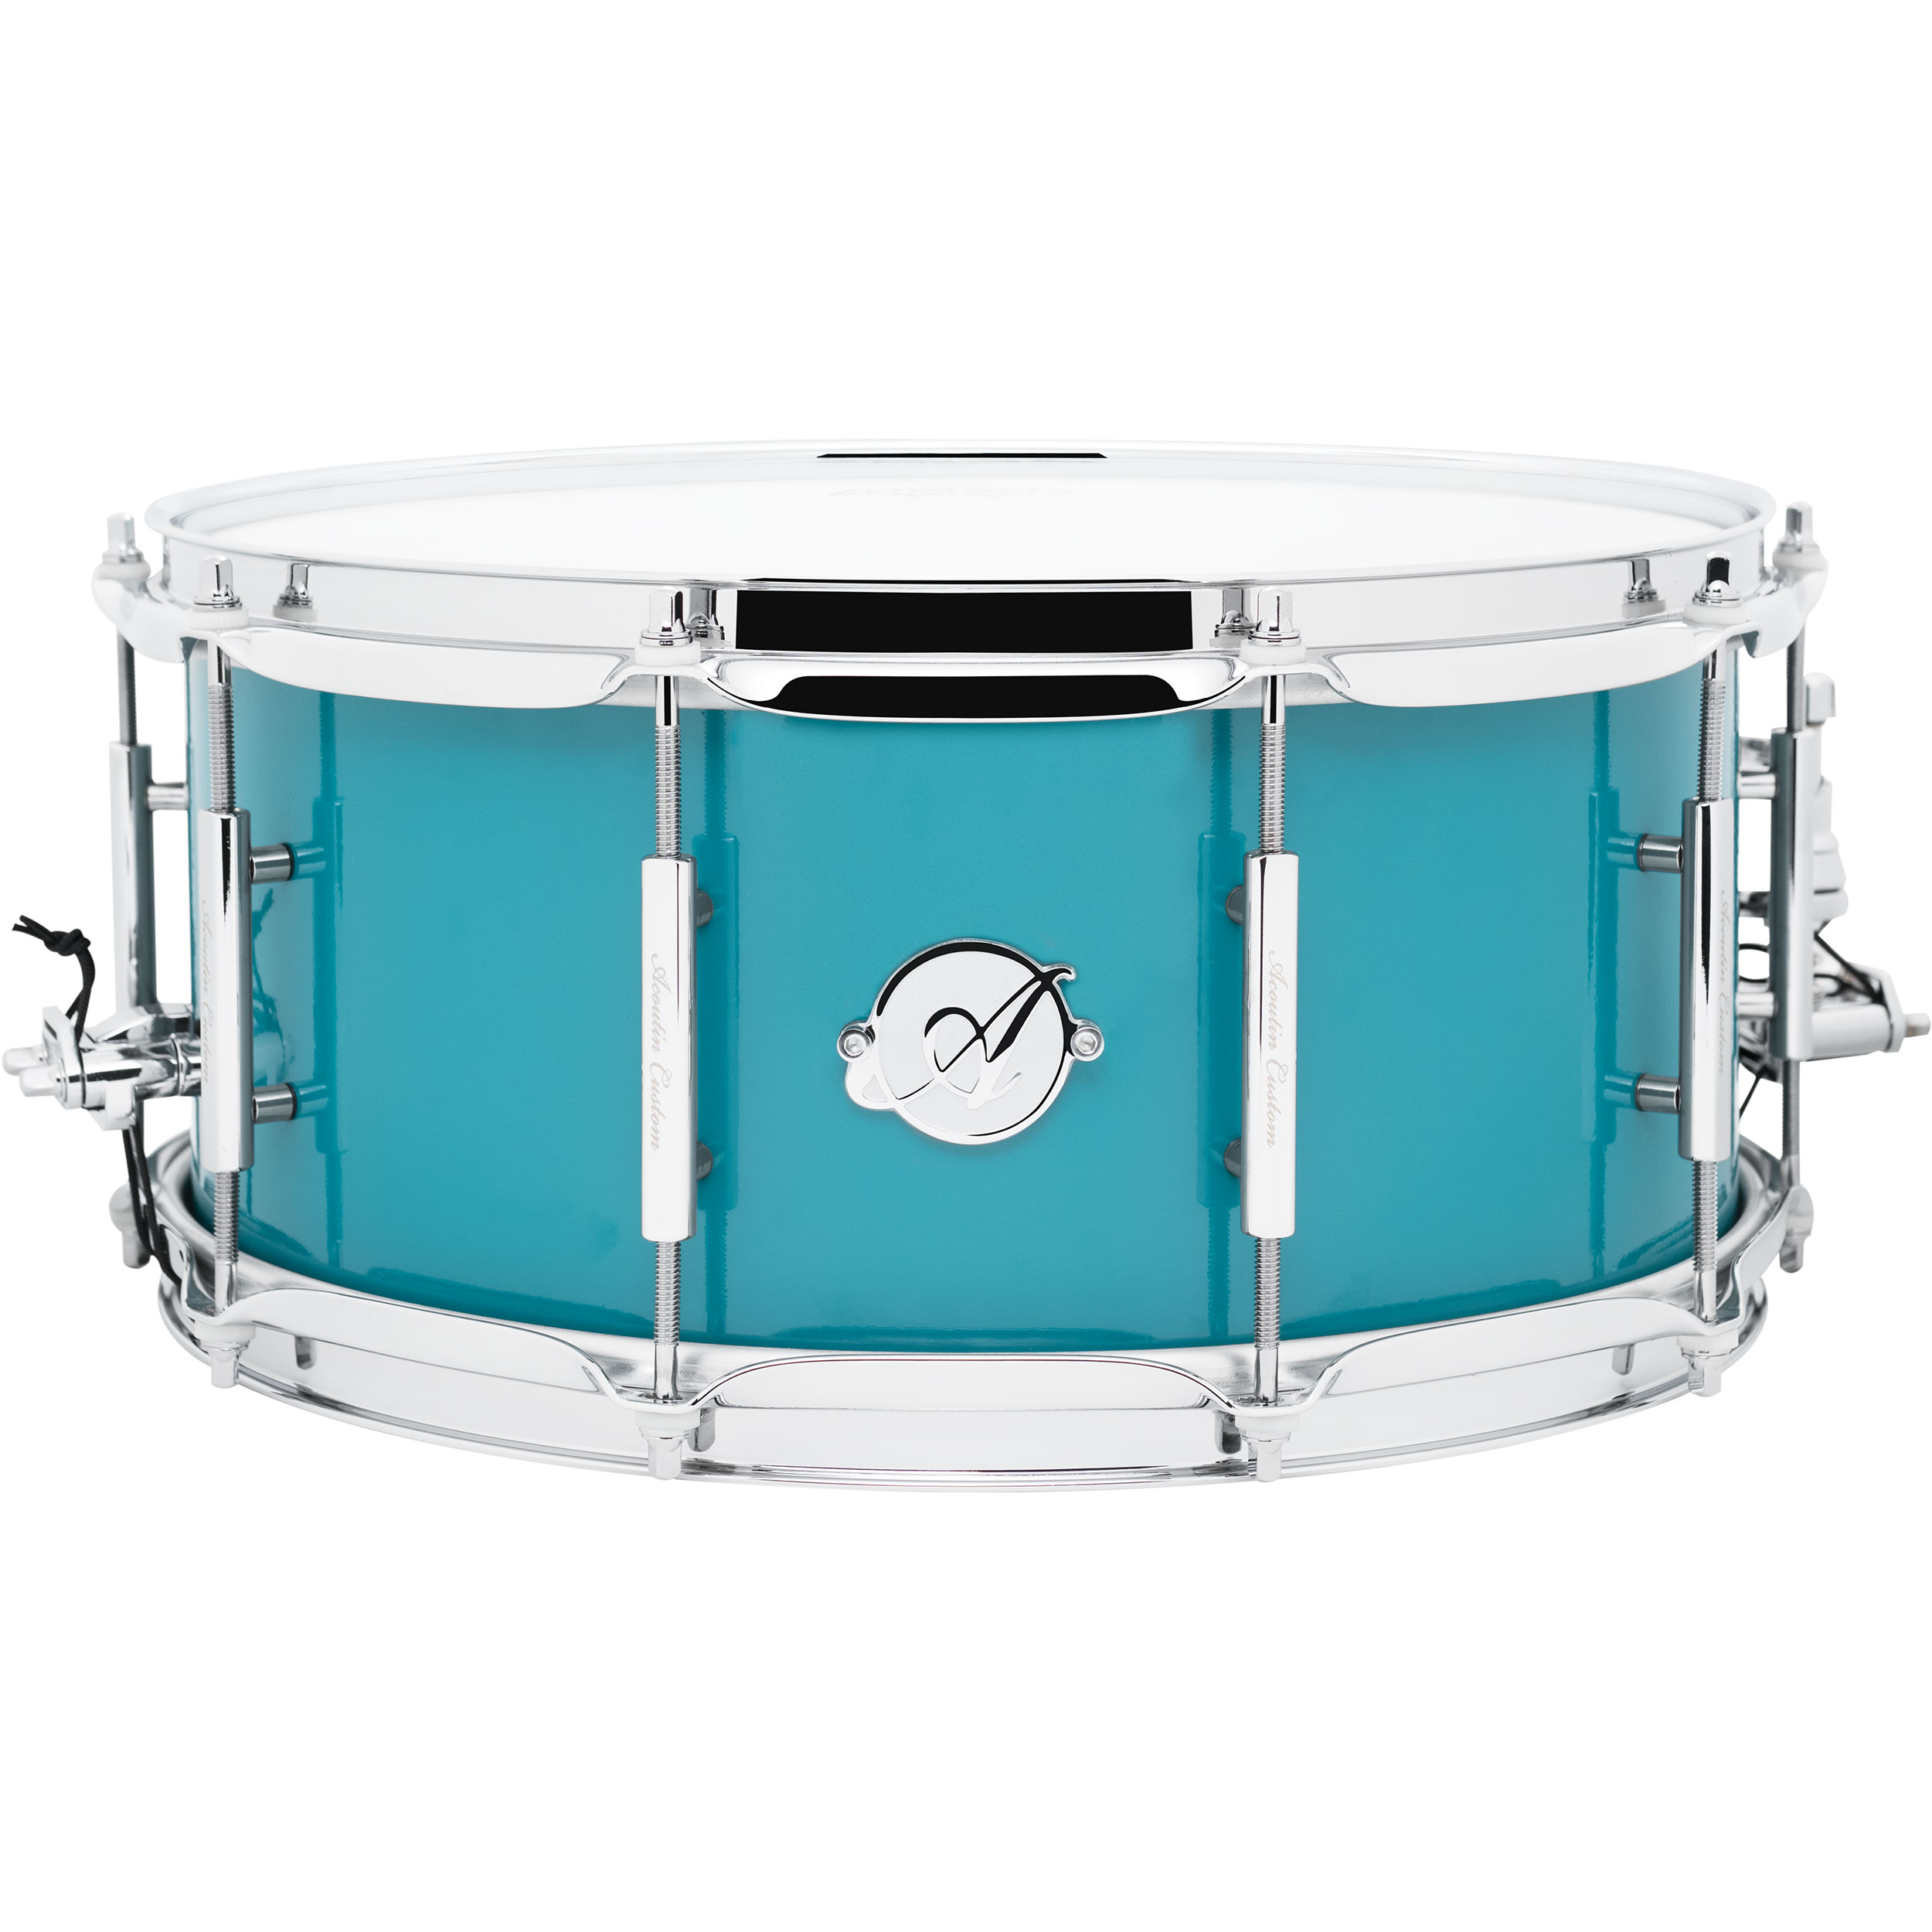 "Acoutin 6.5"" x 14"" Stainless Steel Snare Drum in Teal"